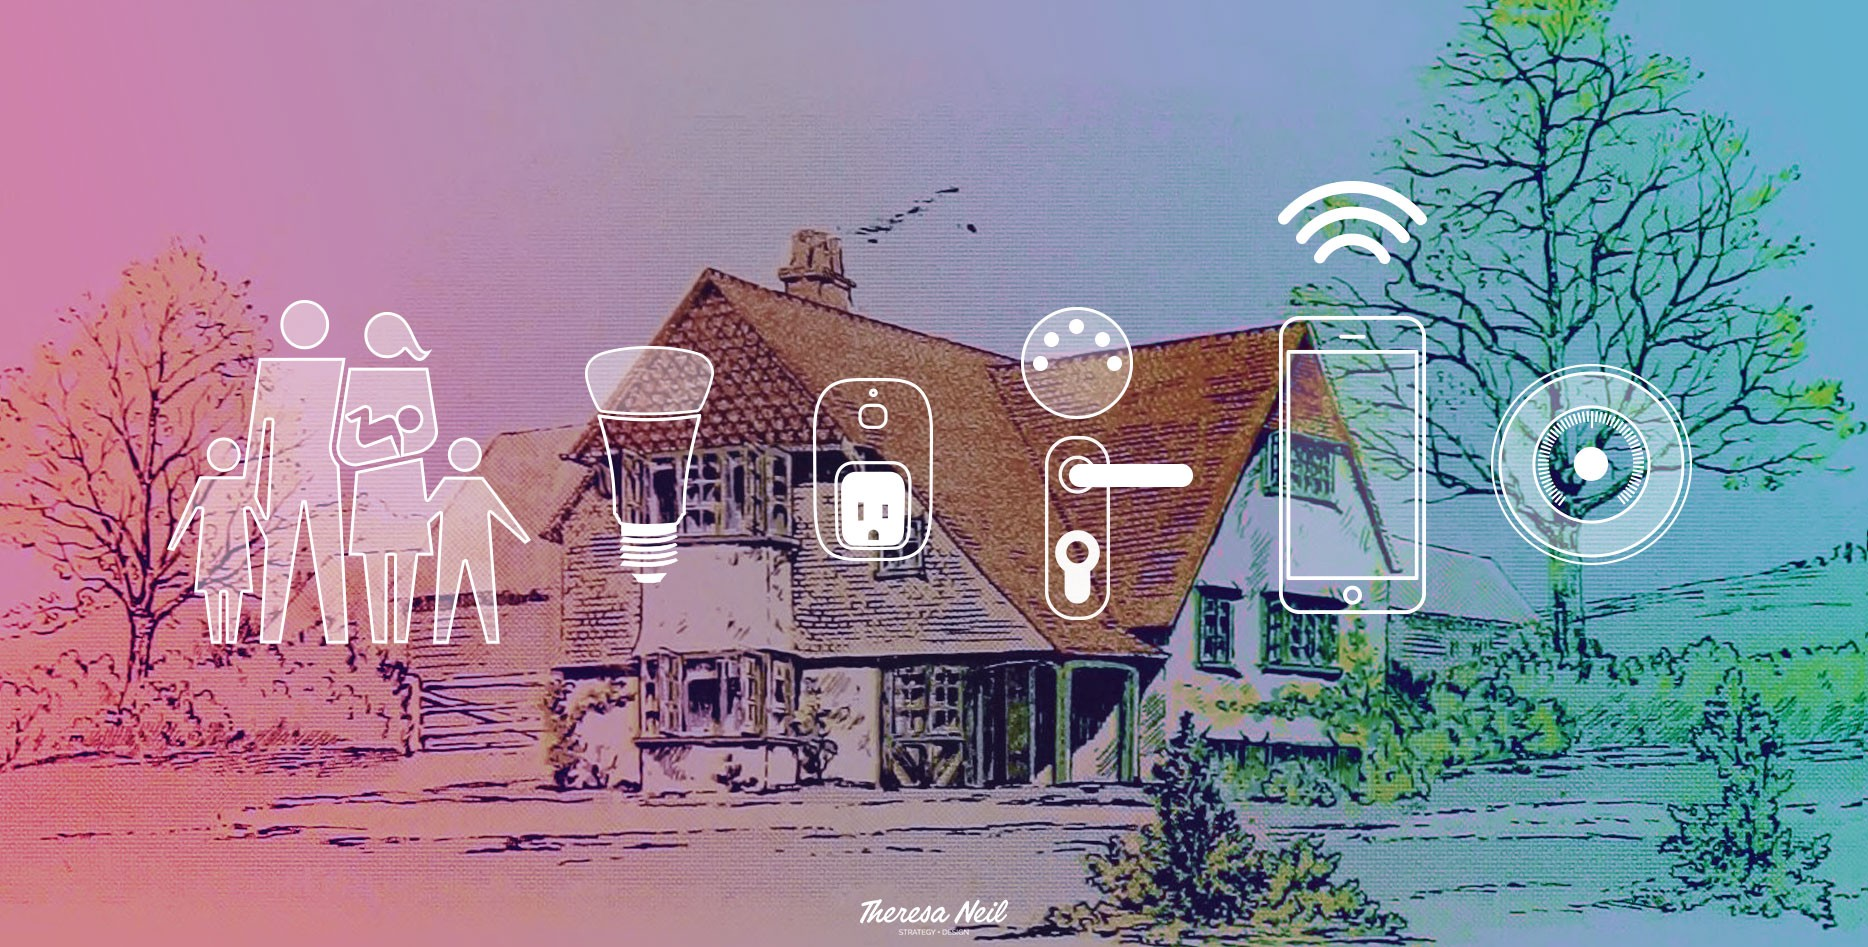 The Future Of People In Connected Homes By Sandy Martinuk Strategy Design Medium